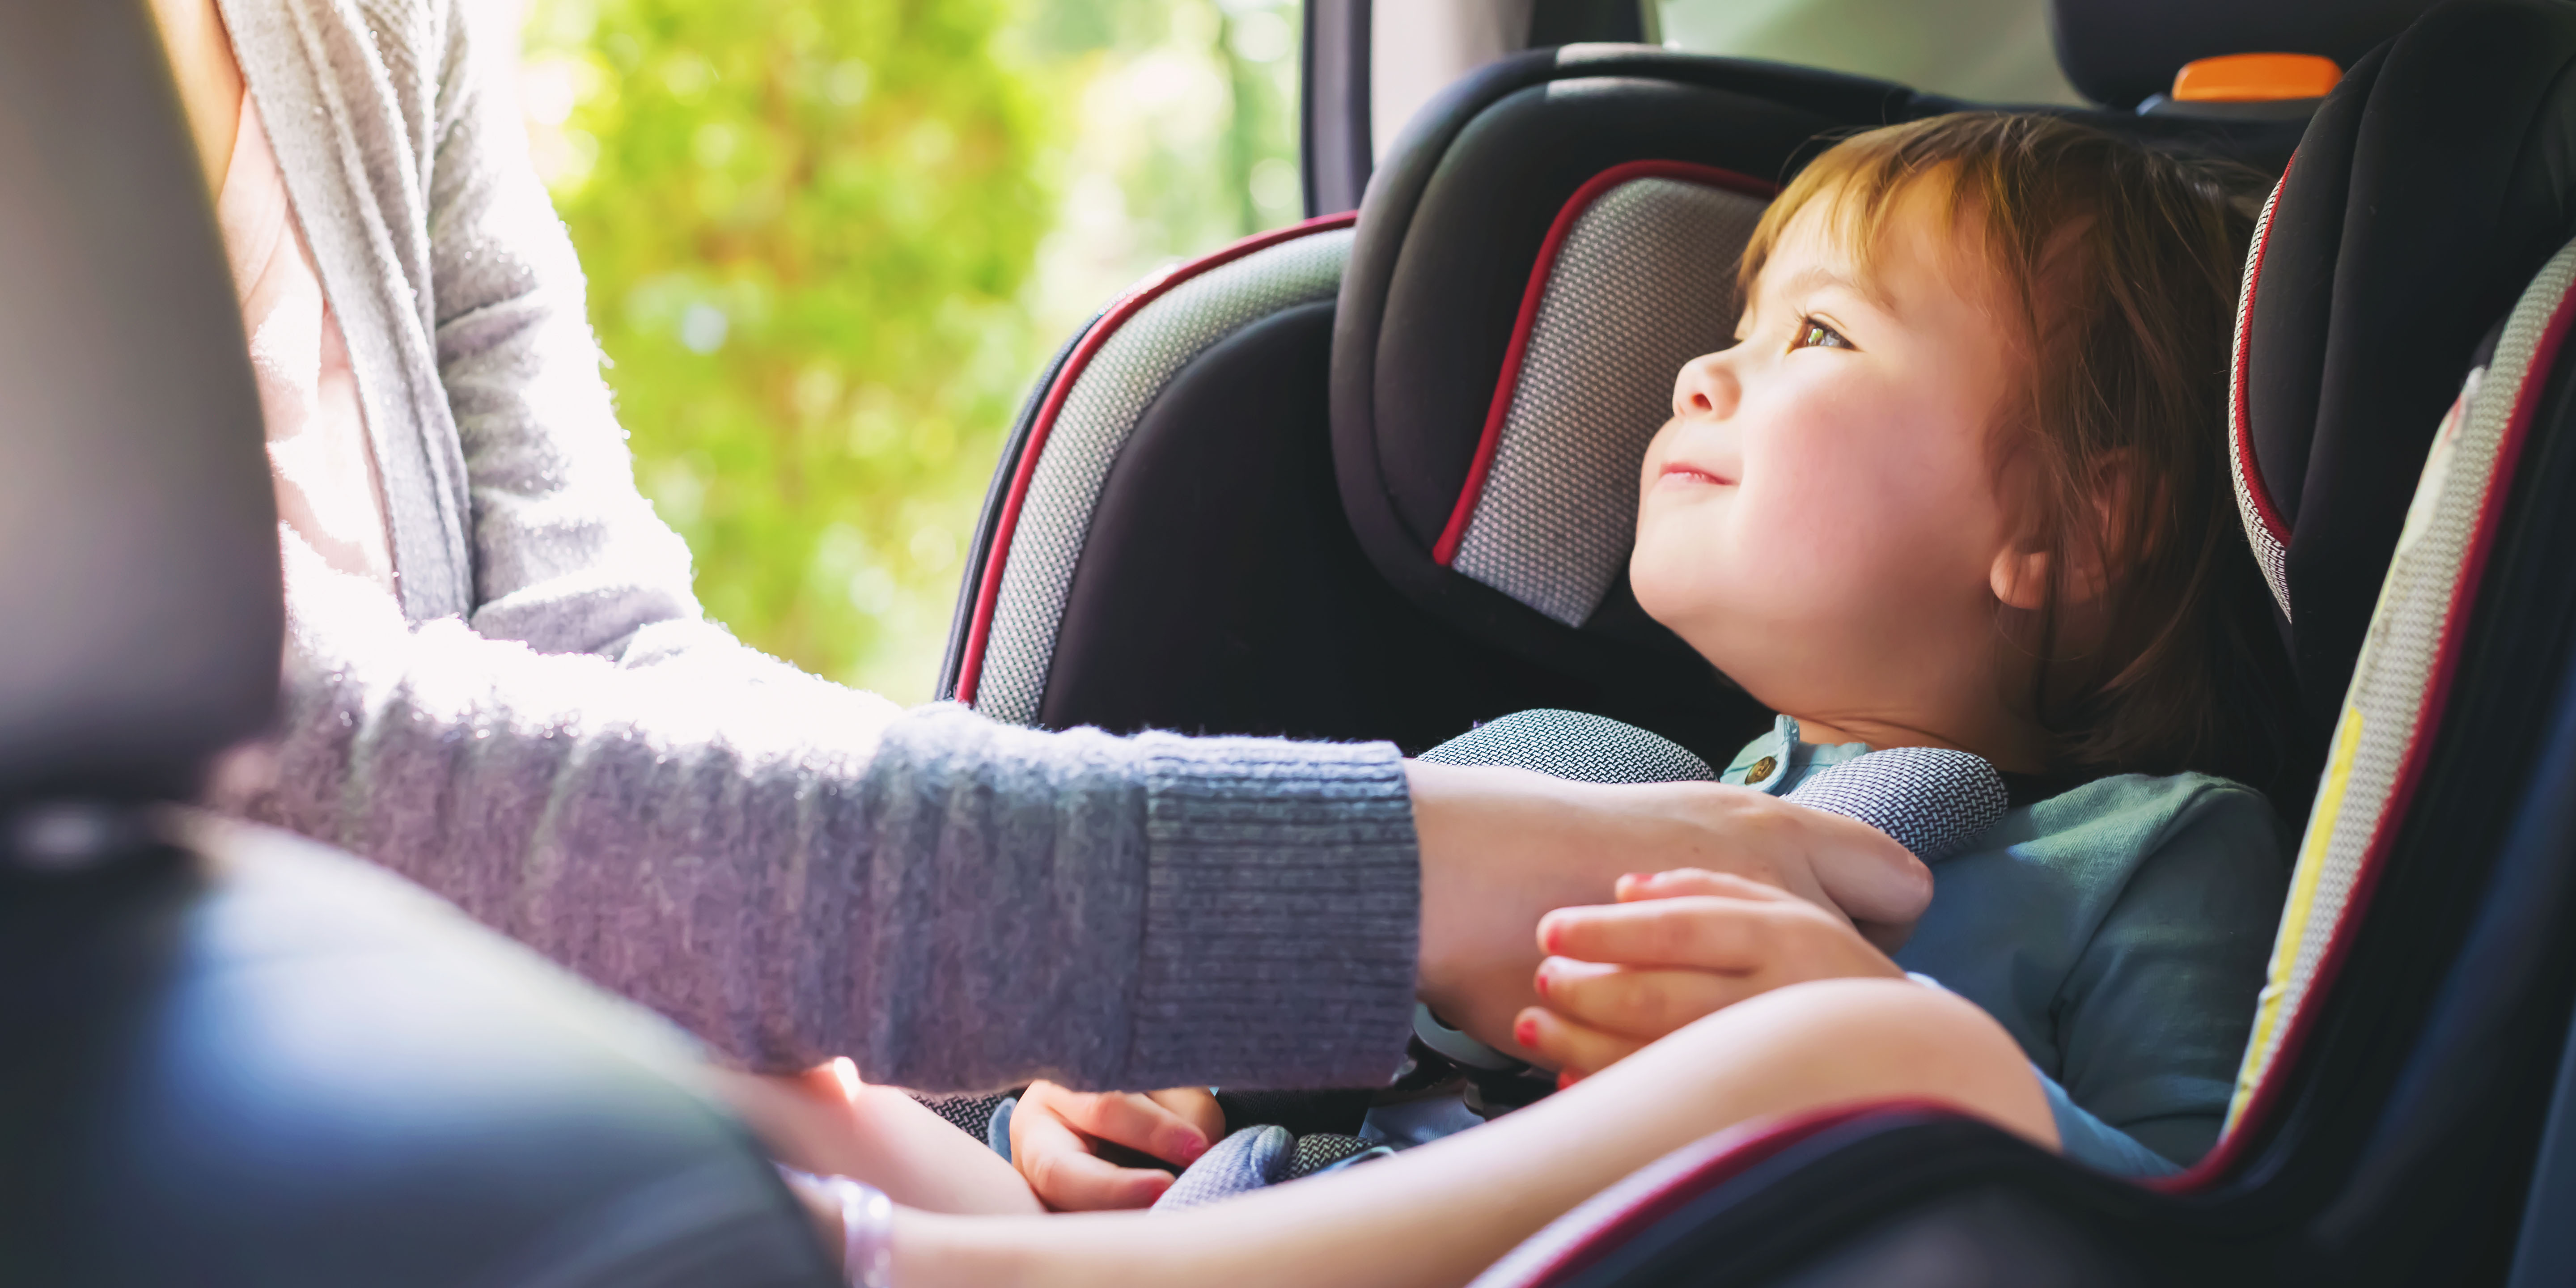 Cars and child seats: What you need to know